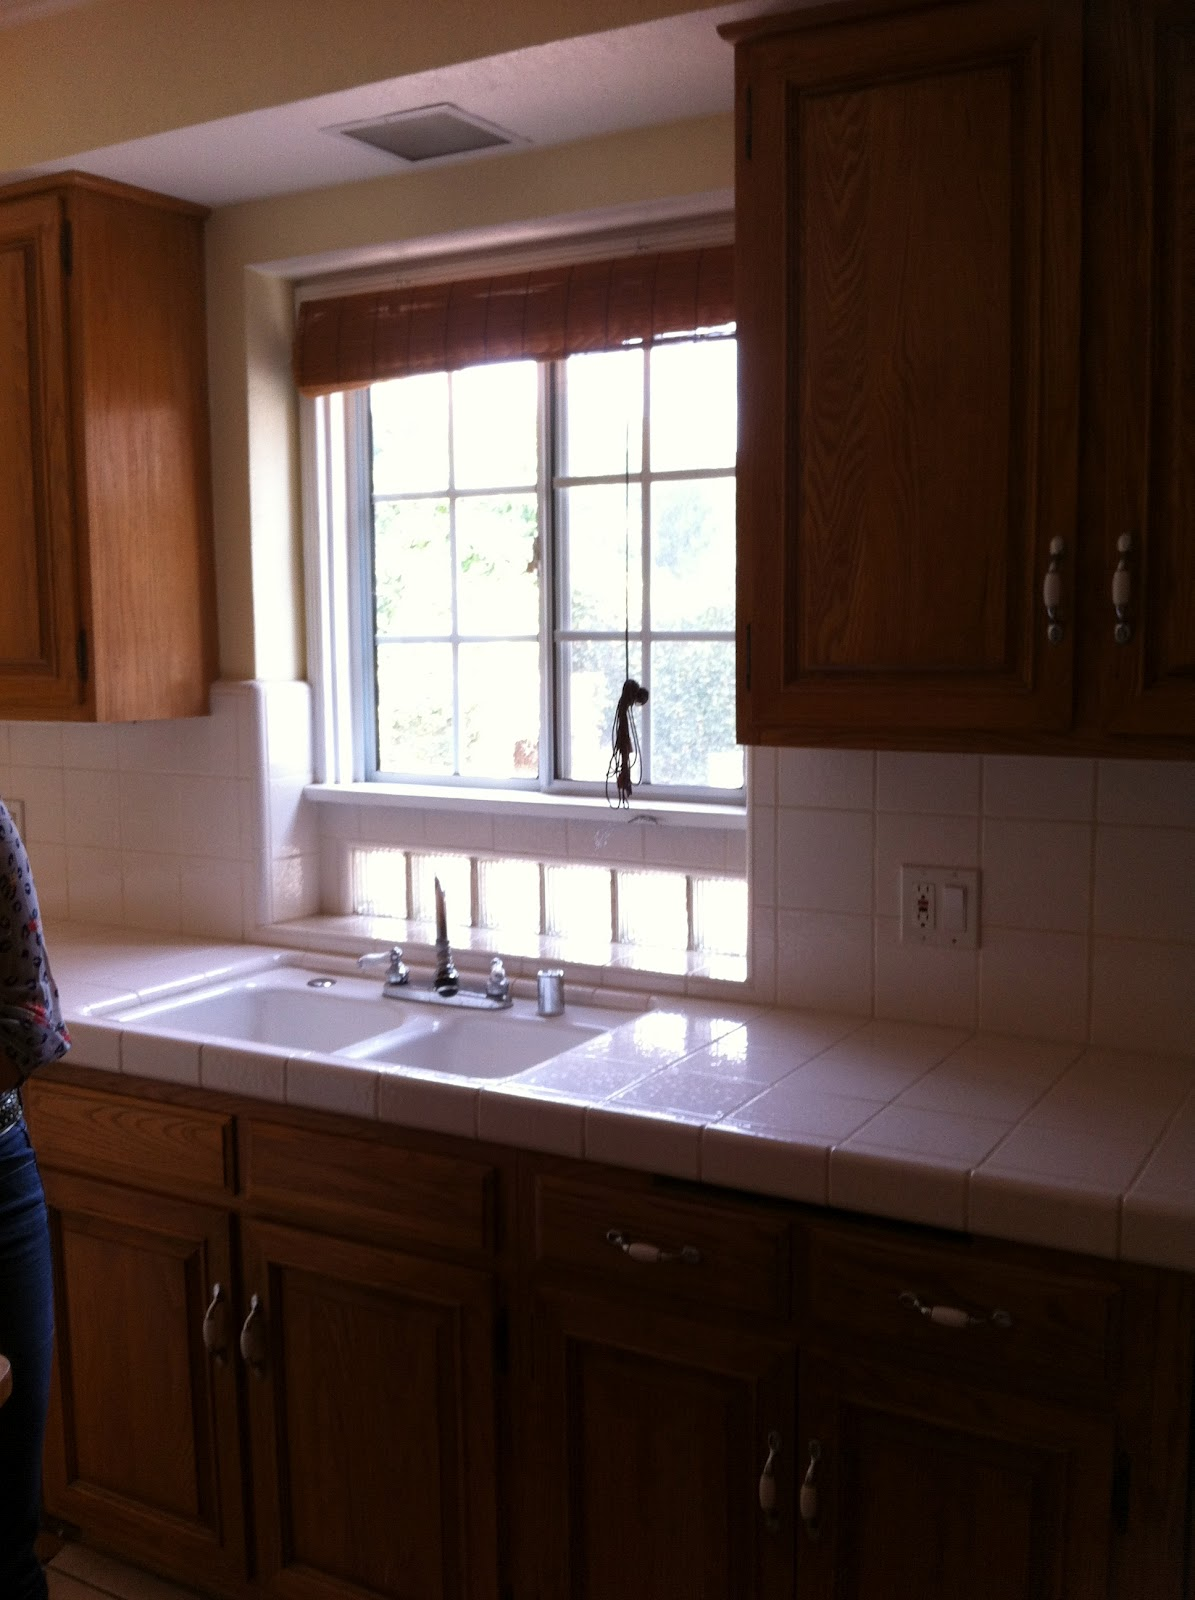 Pull Up Kitchen Cabinets Table With Storage Emi Interior Design, Inc: House Hunters Renovation